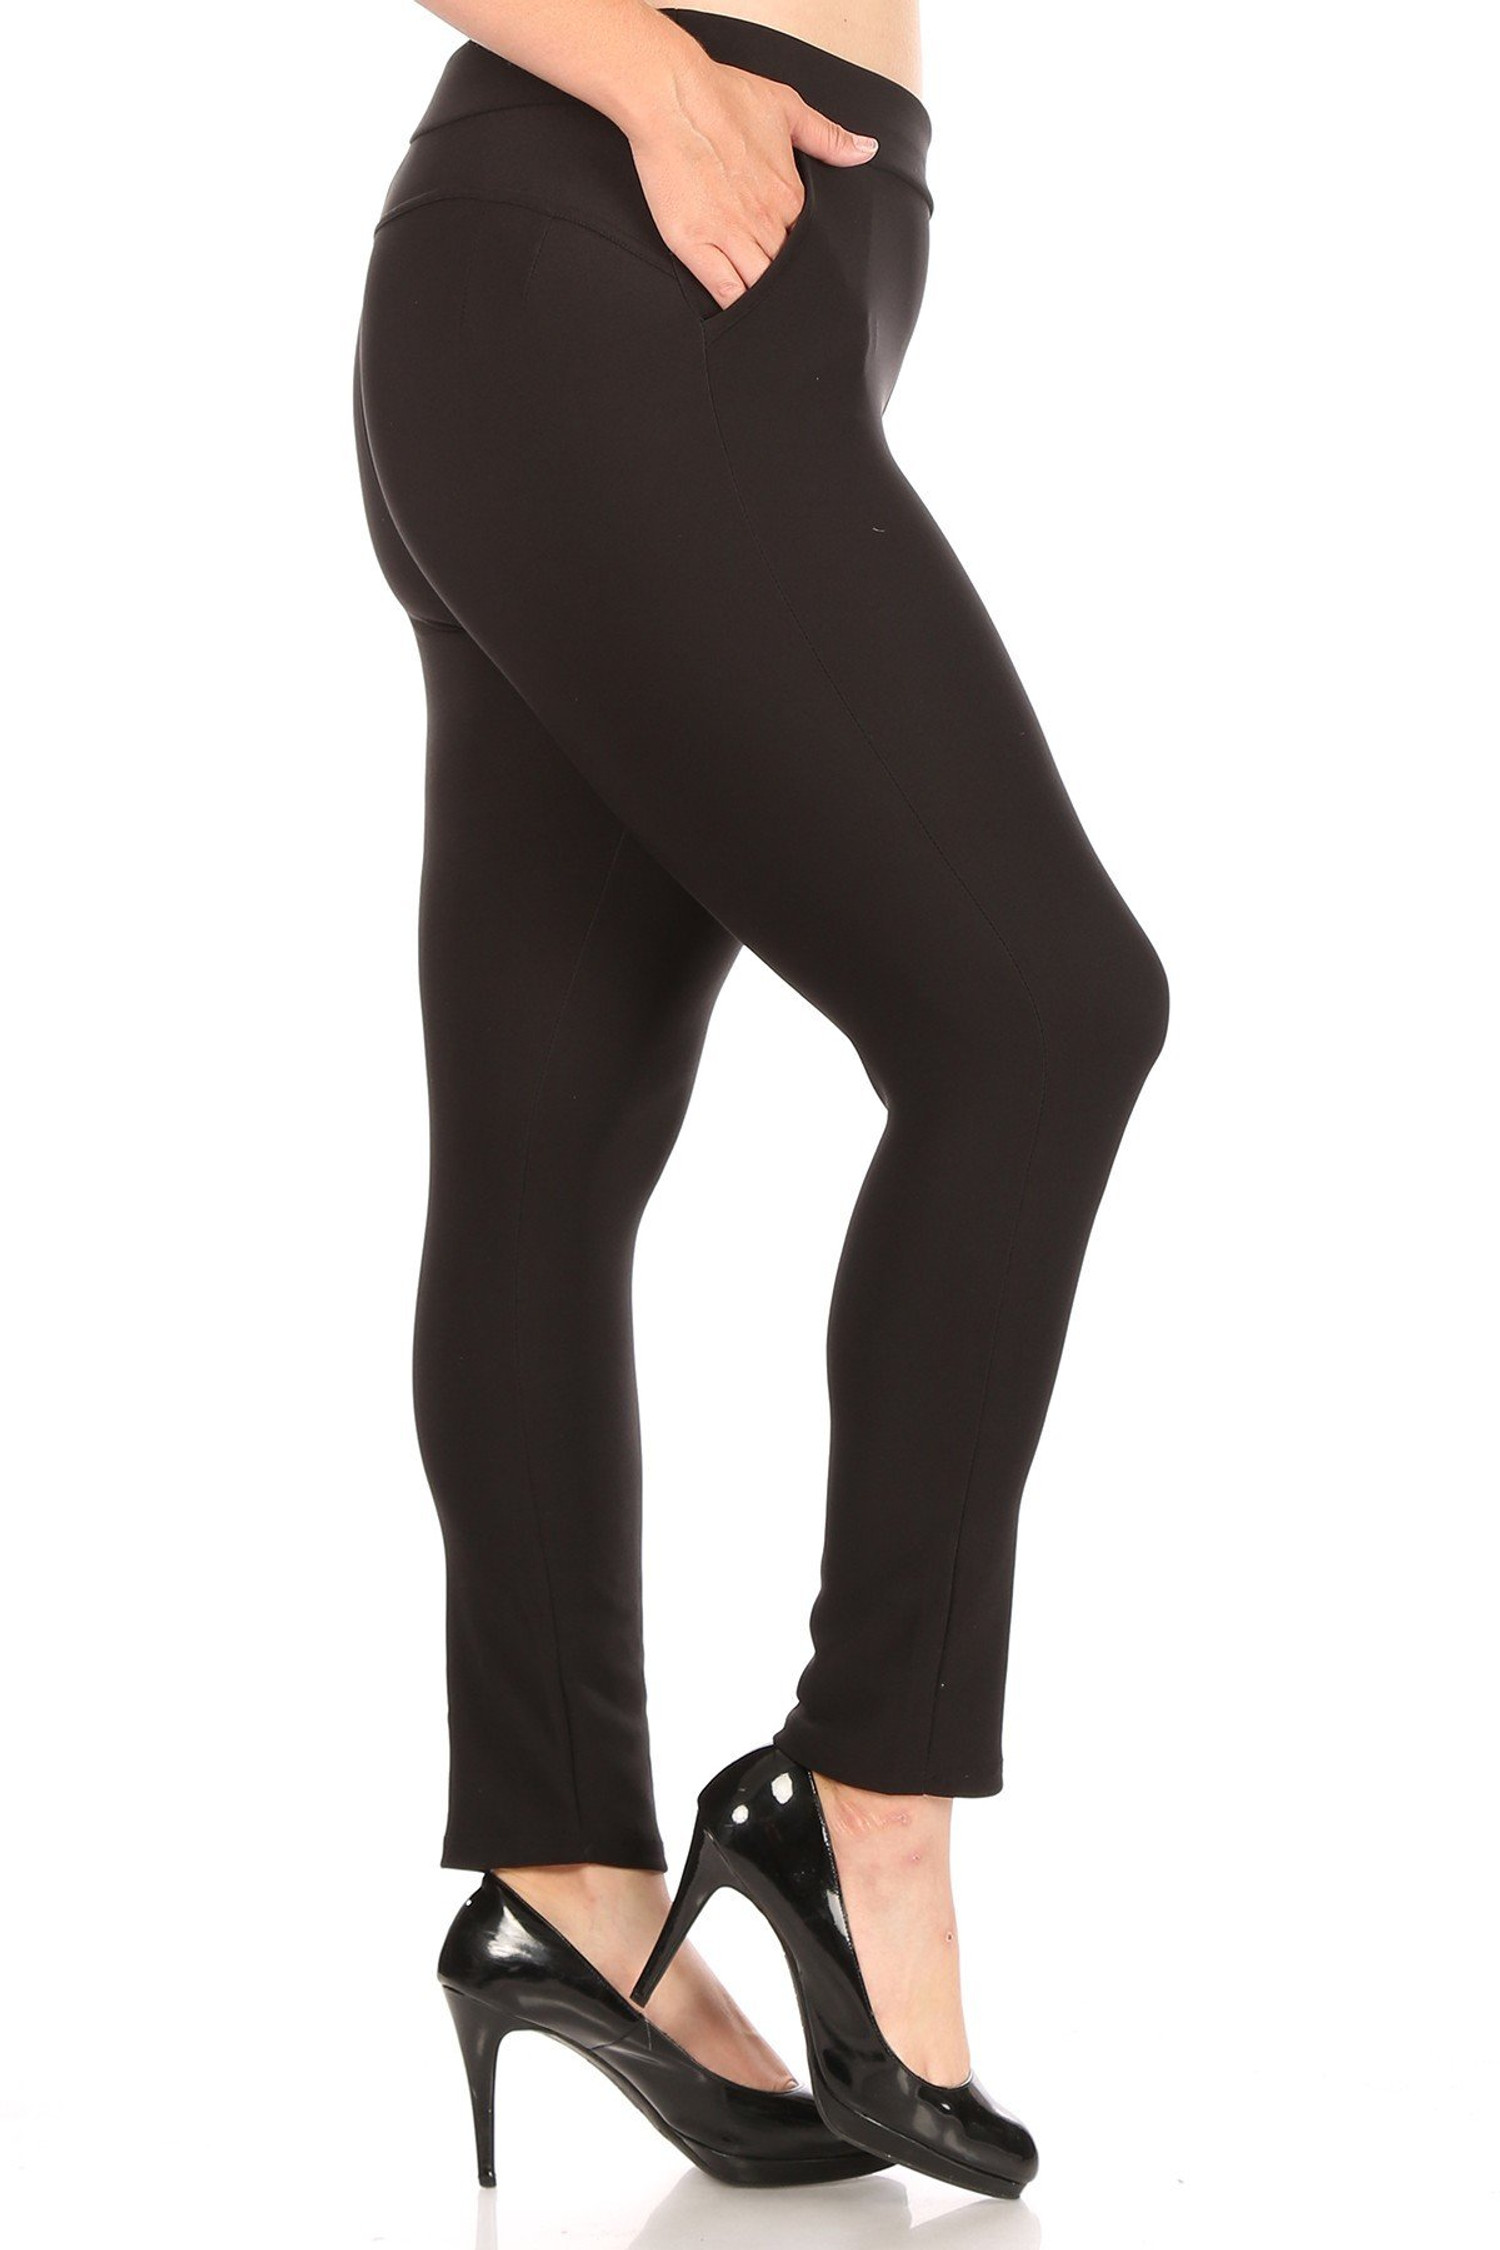 Solid Black Body Sculpting Plus Size Treggings with Pockets